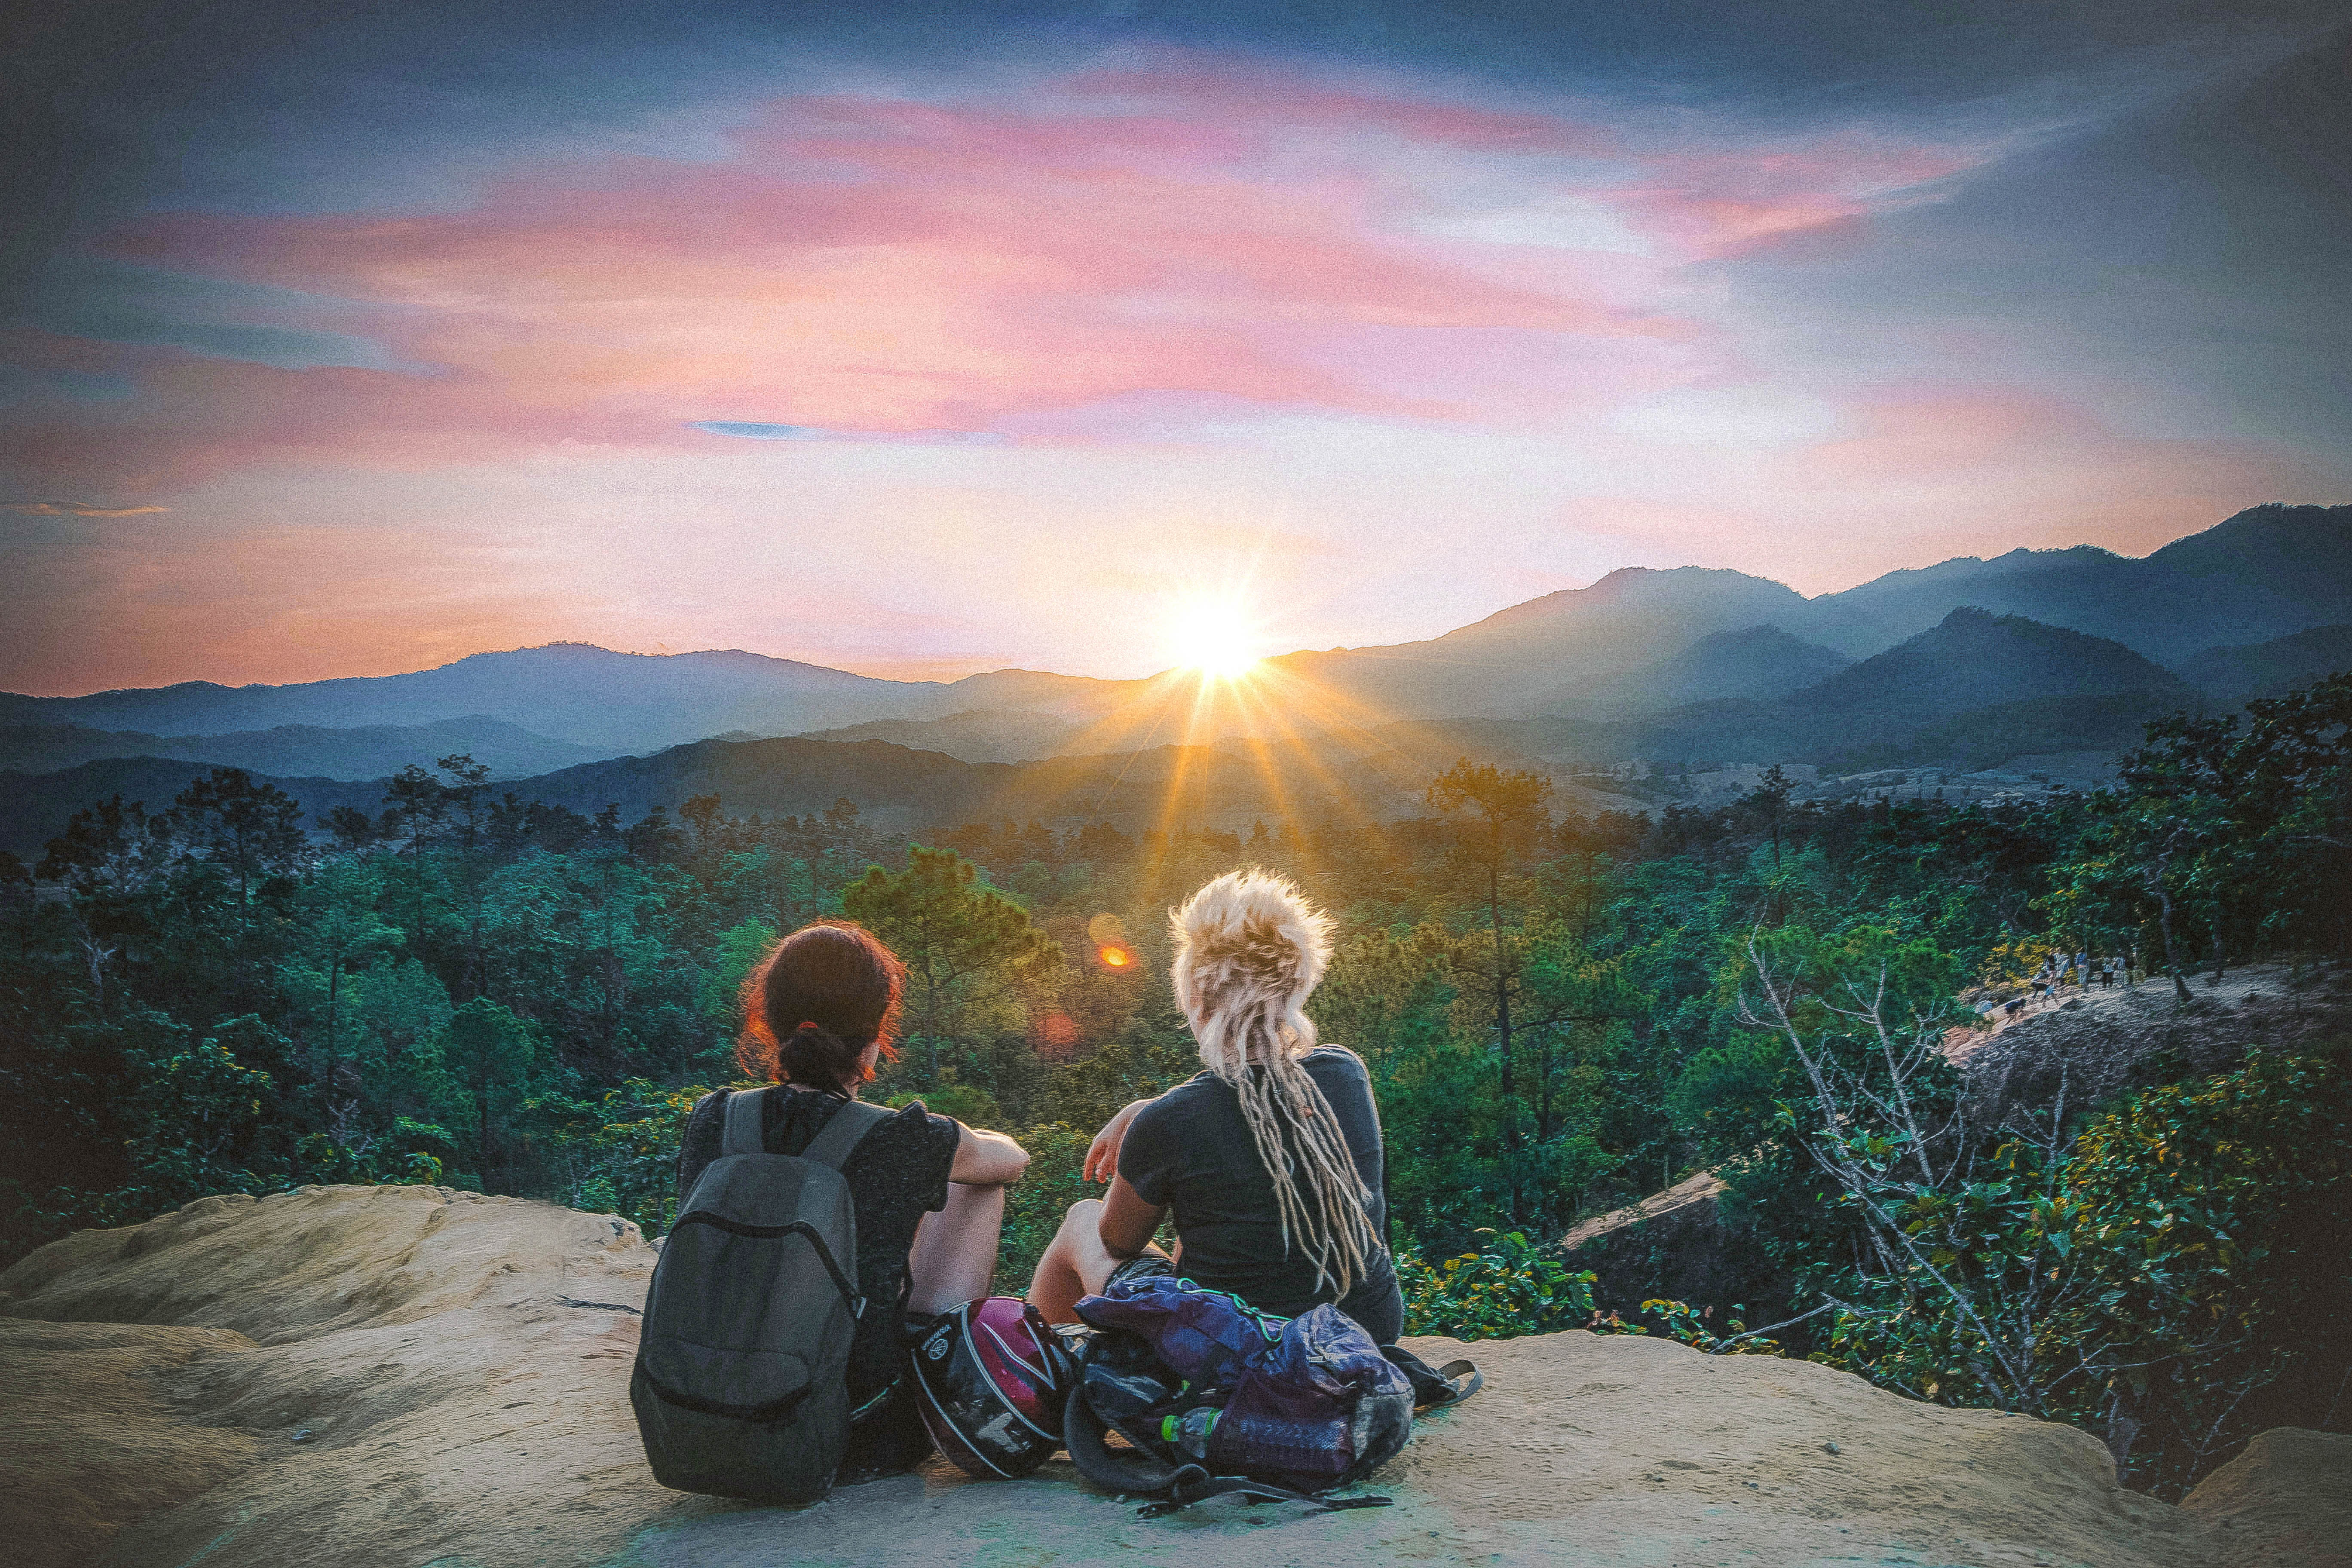 watching sunset in canyon in pai thailand hippie town